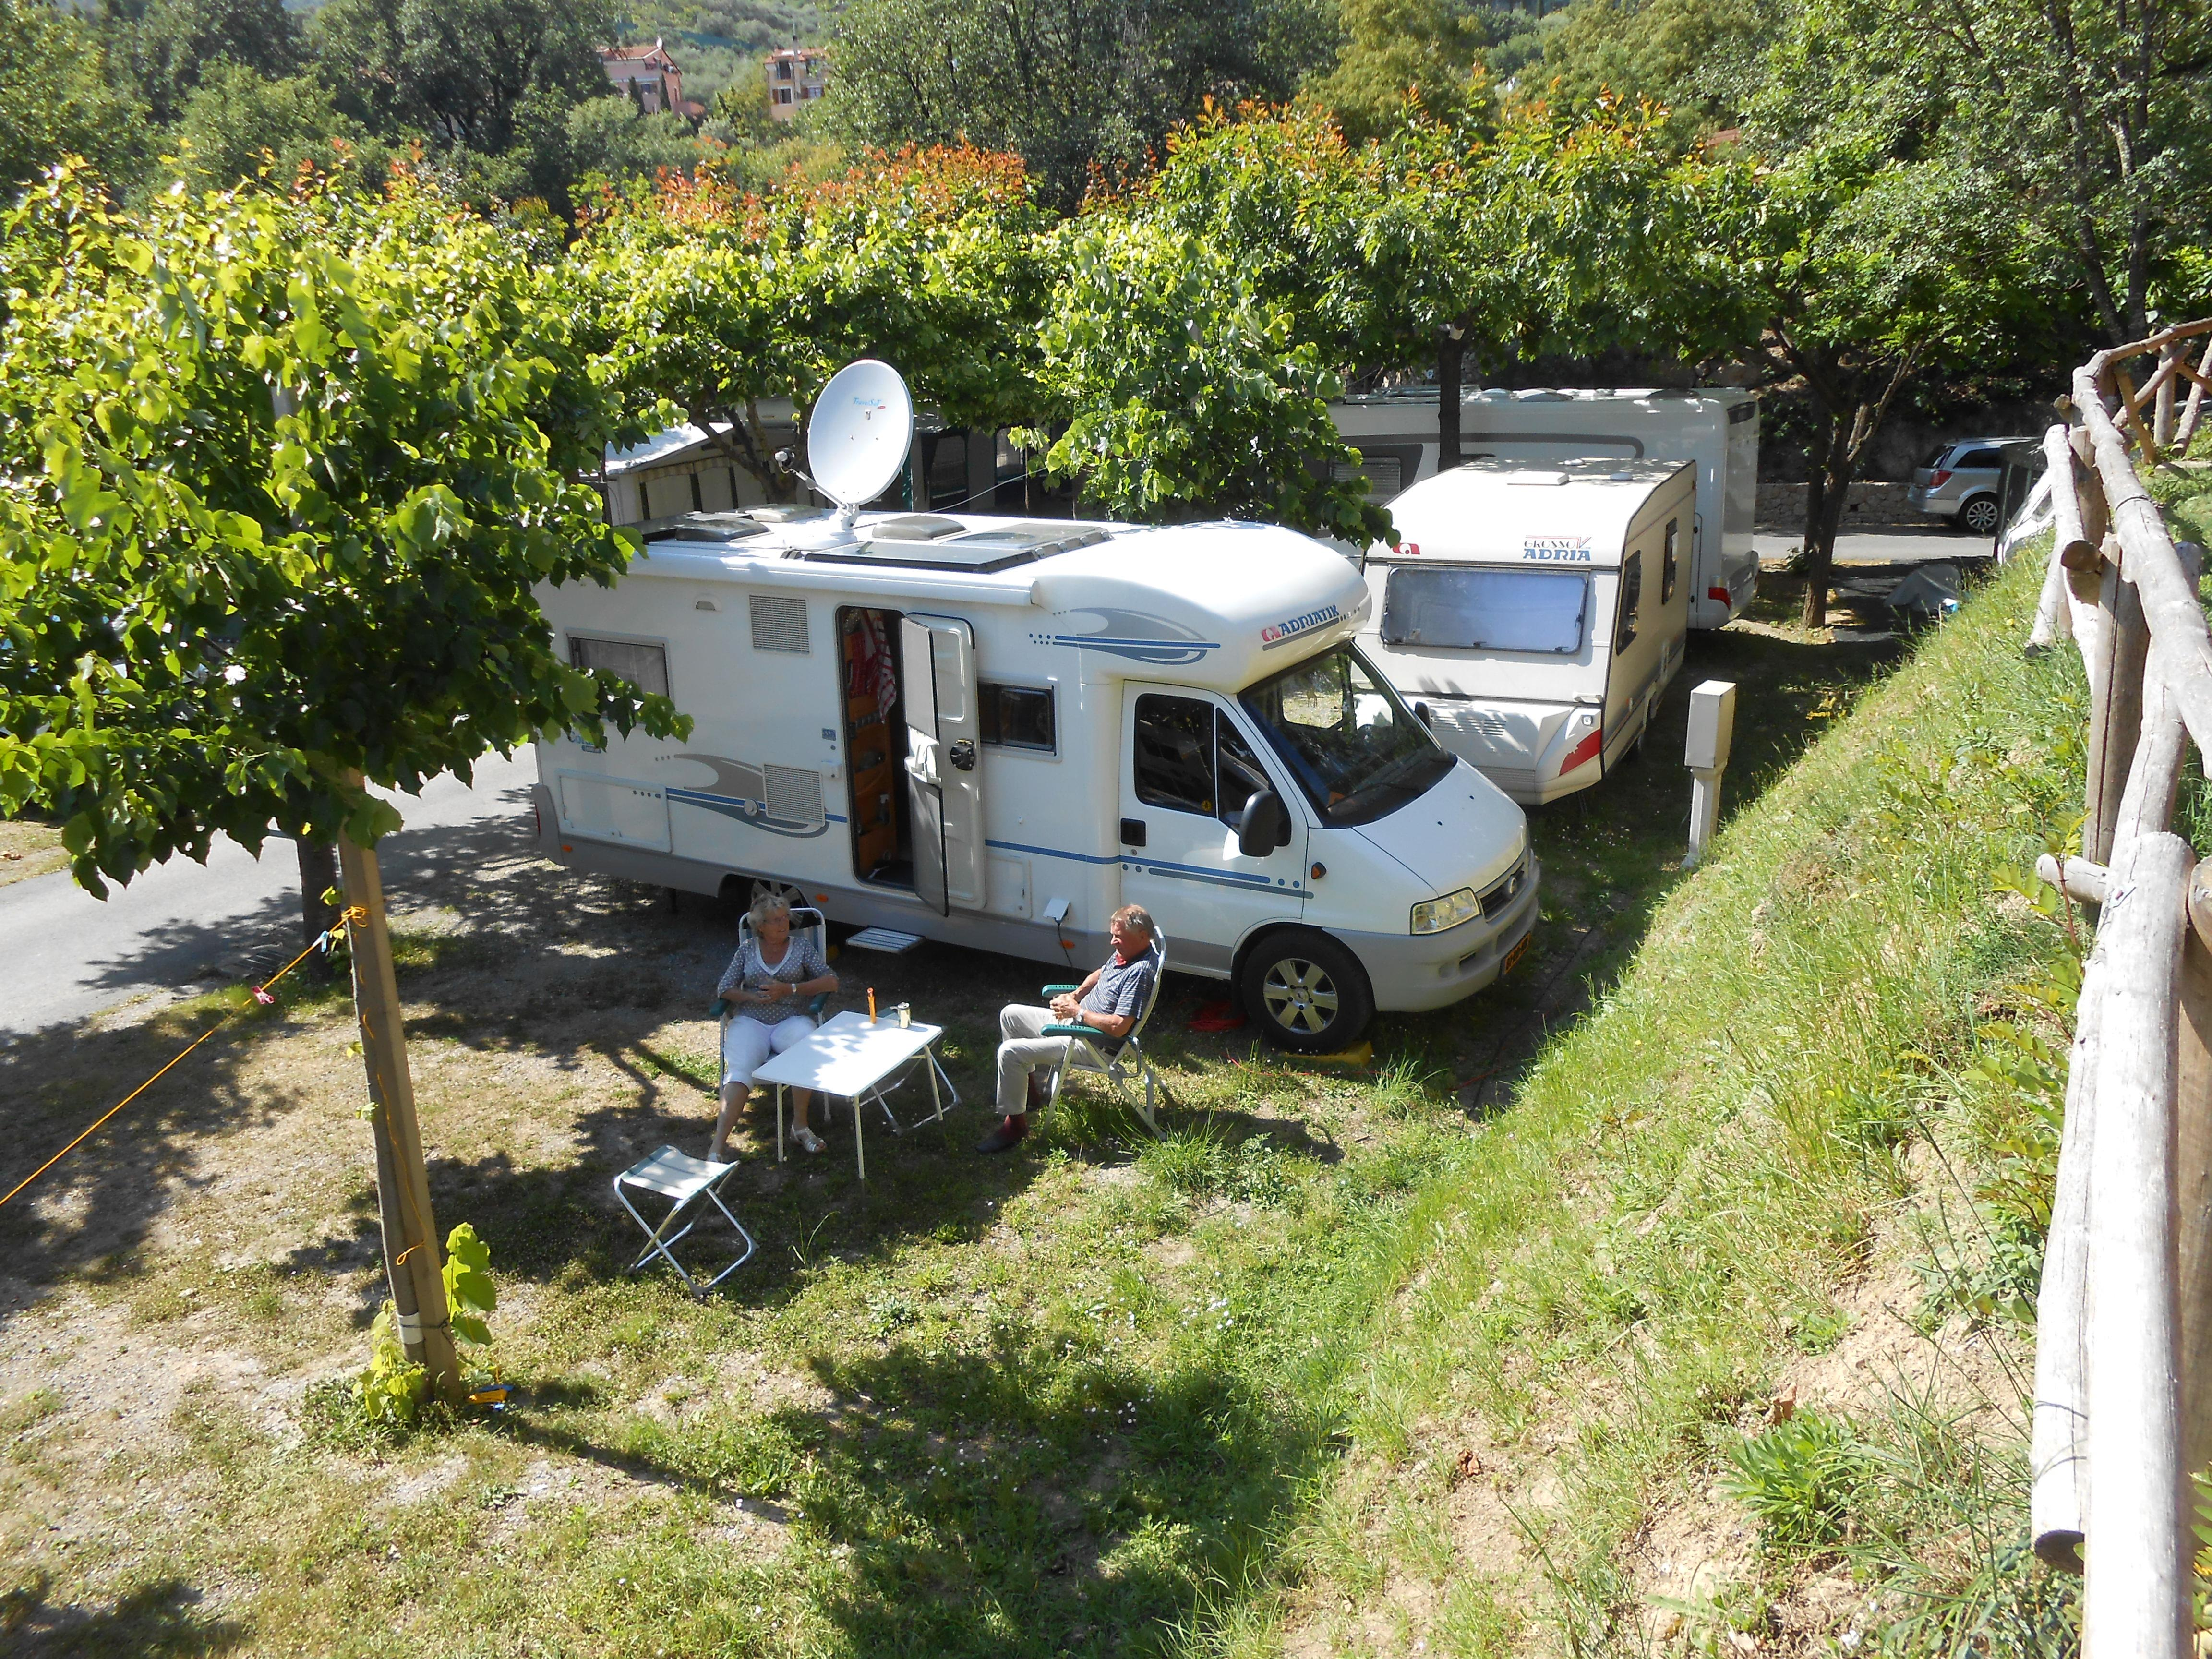 Emplacement - Emplacement : Caravane Max M. 7,30   Ou Camping-Car - Camping Pian dei Boschi